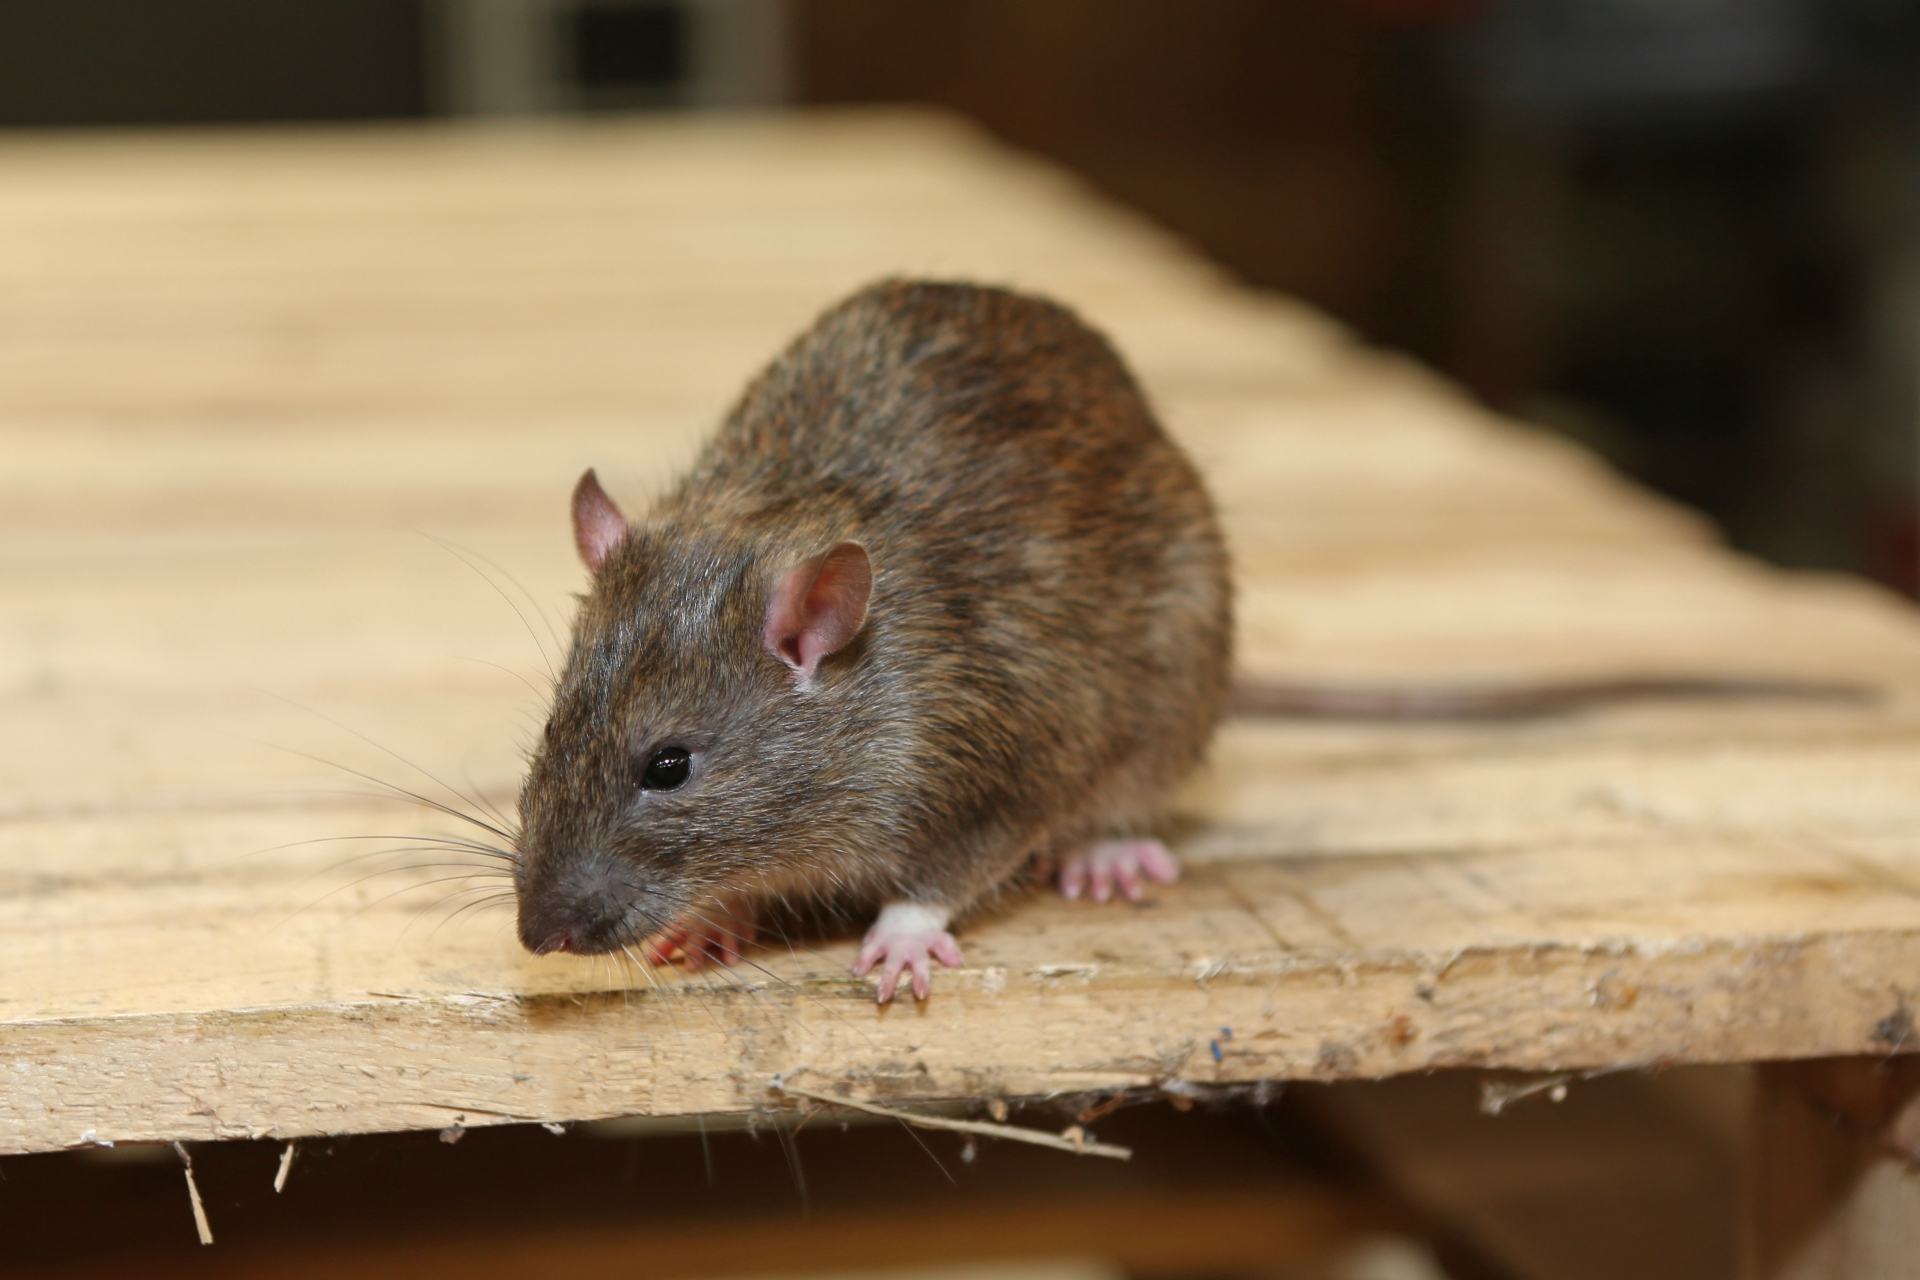 Rat Infestation, Pest Control in West Kensington, W14. Call Now 020 8166 9746